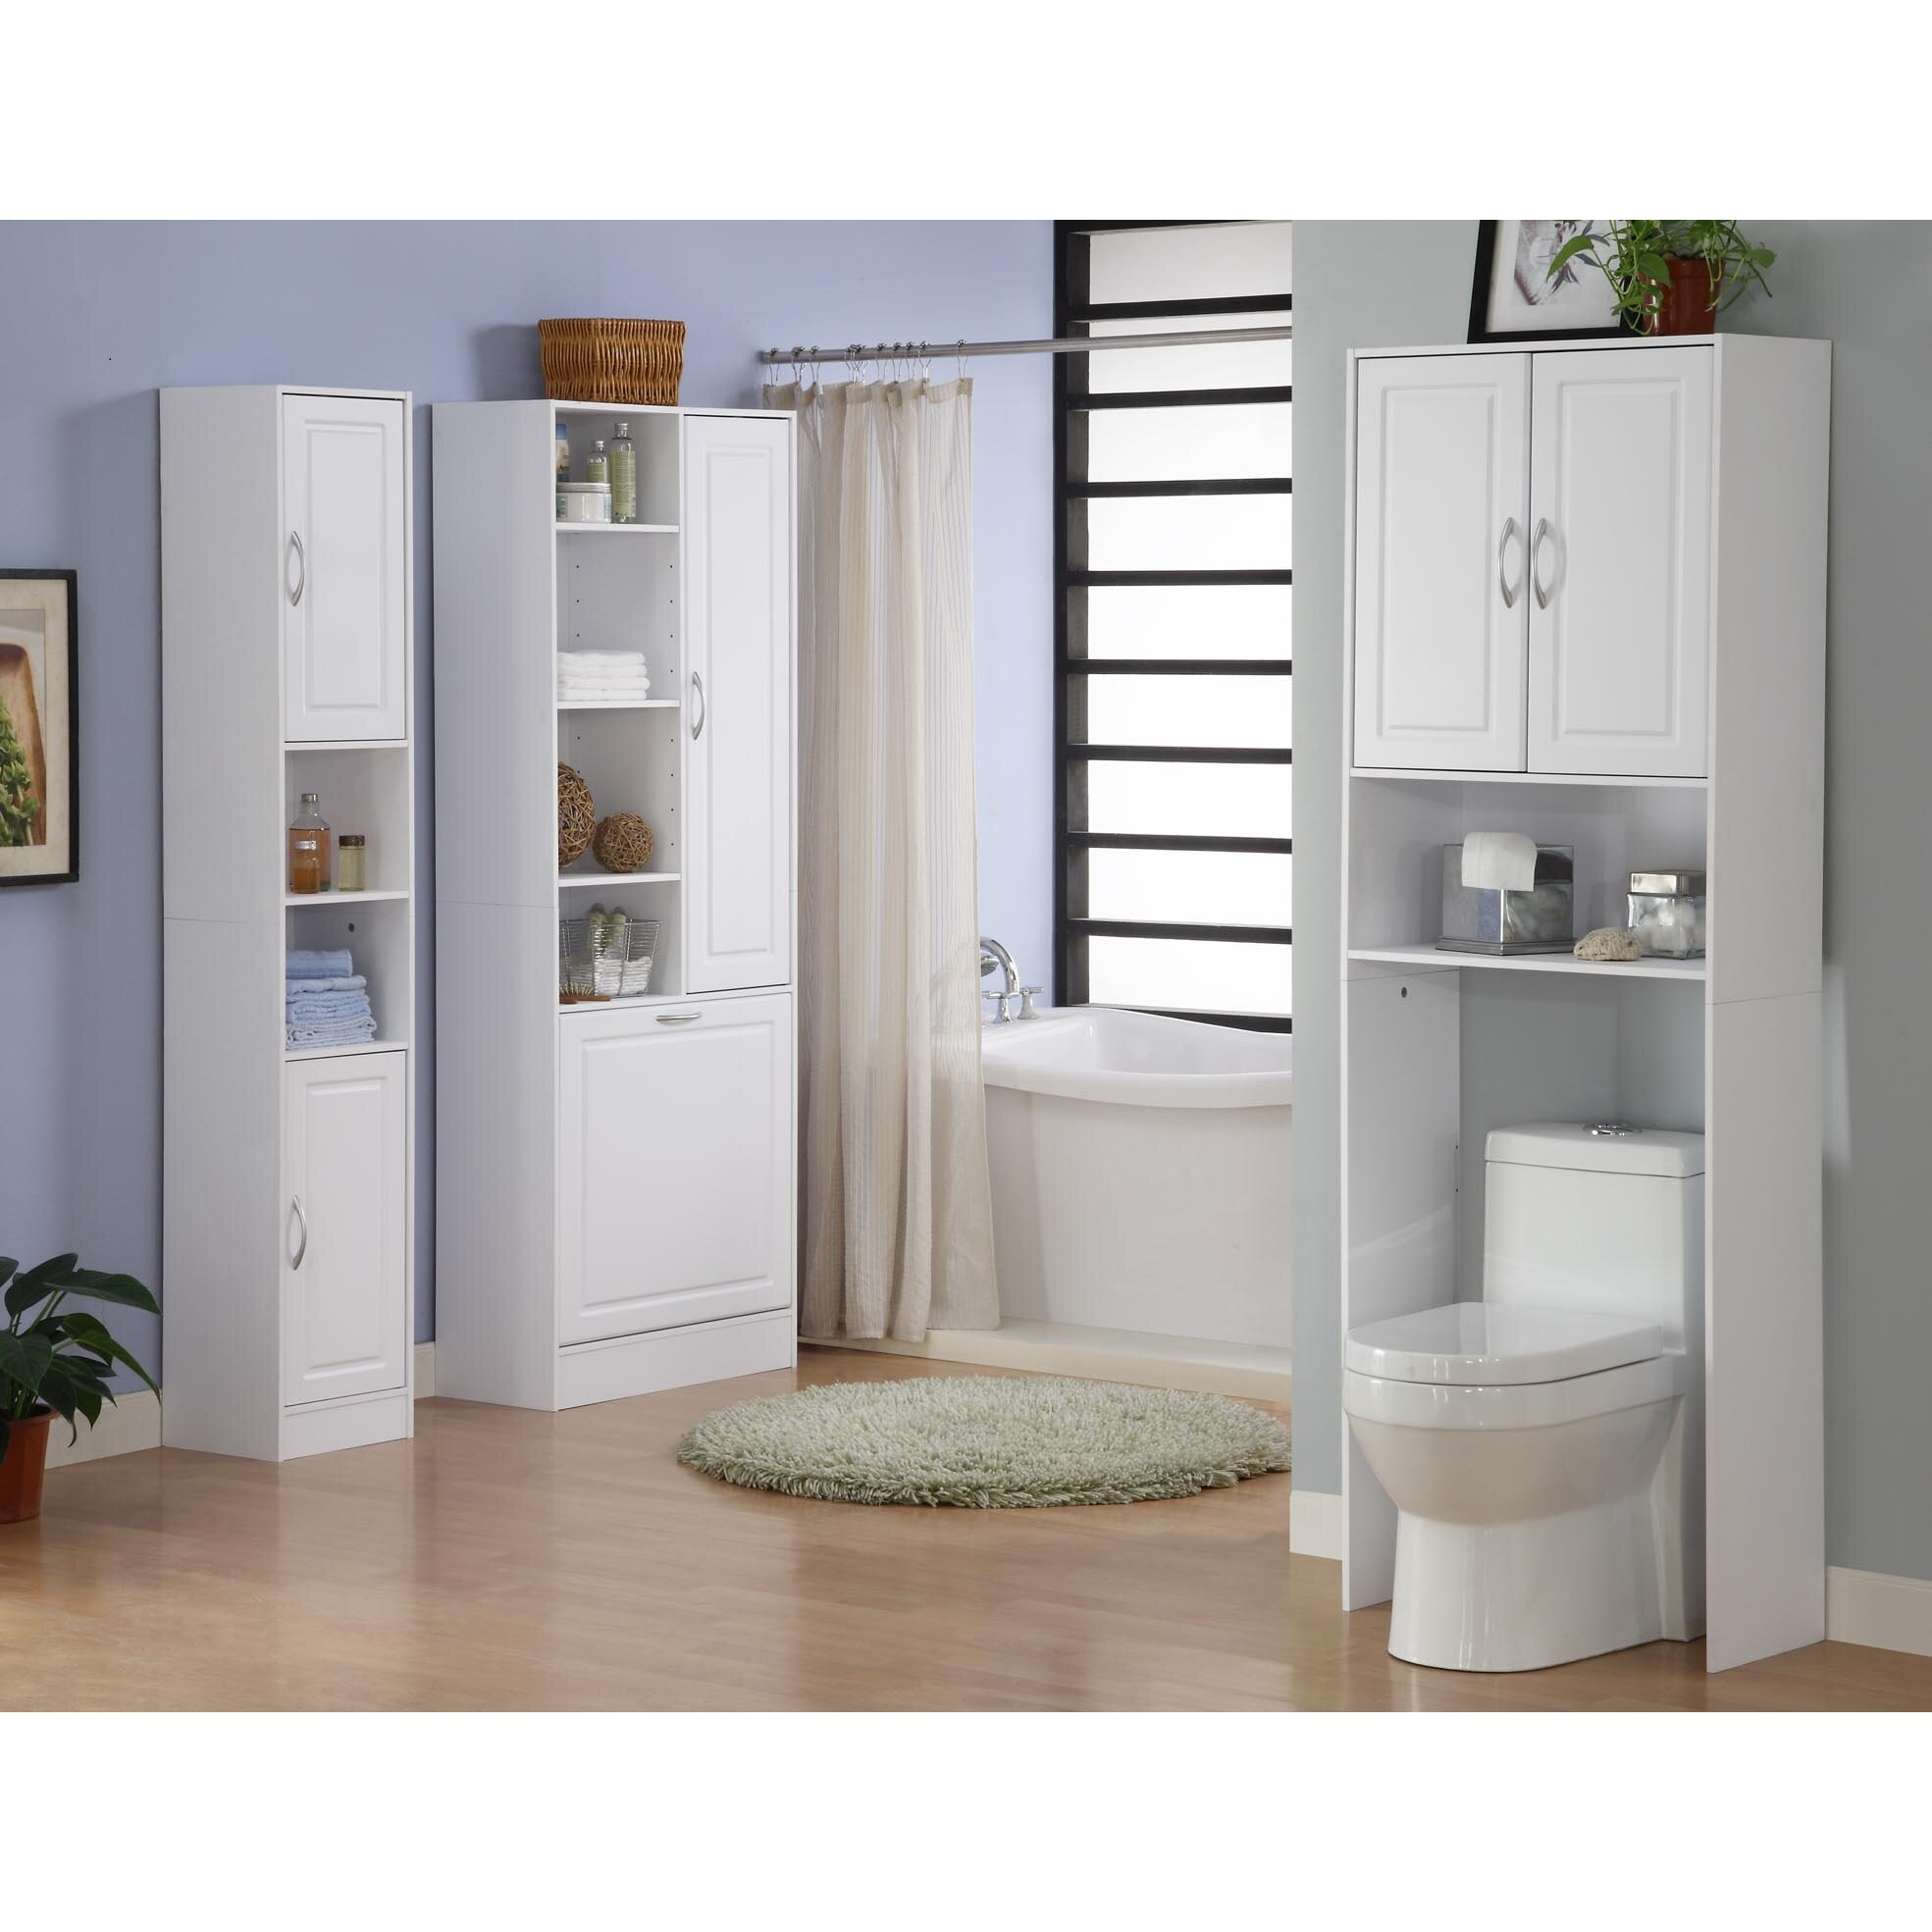 4d concepts 25 x 28 7 wall mounted cabinet reviews. Black Bedroom Furniture Sets. Home Design Ideas